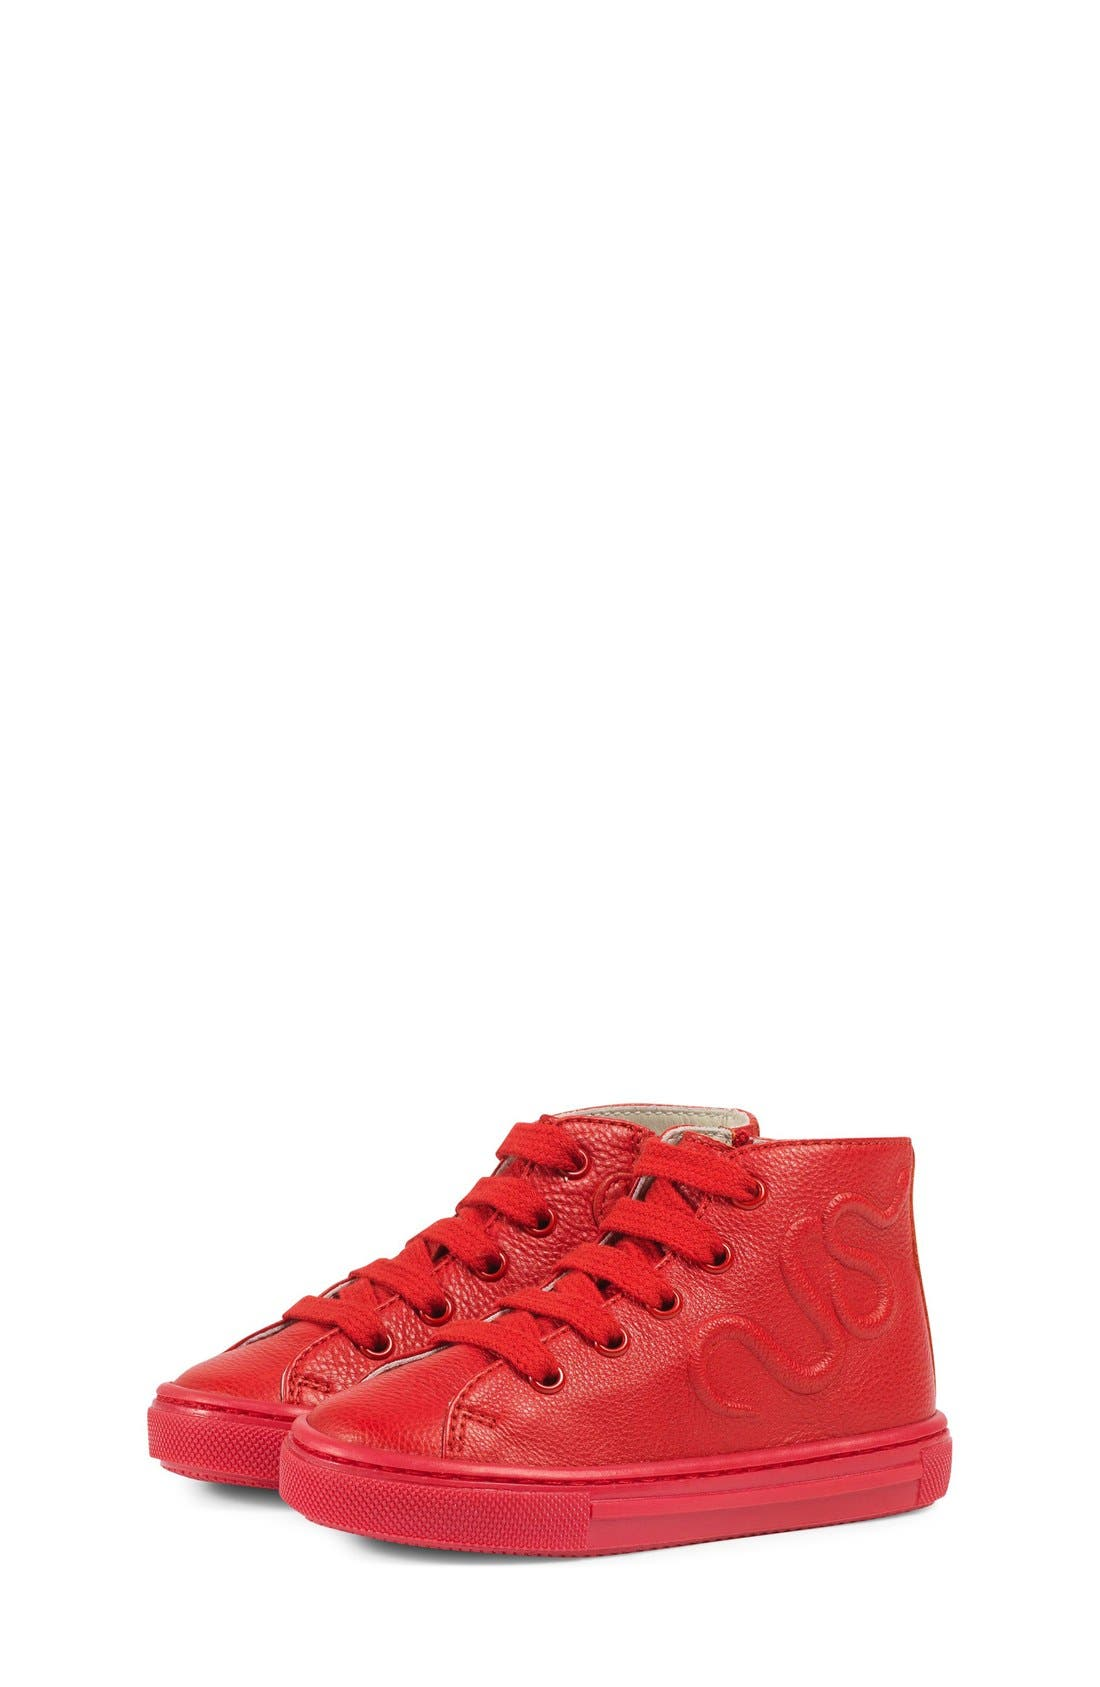 Major High Top Sneaker,                             Alternate thumbnail 2, color,                             Red Leather